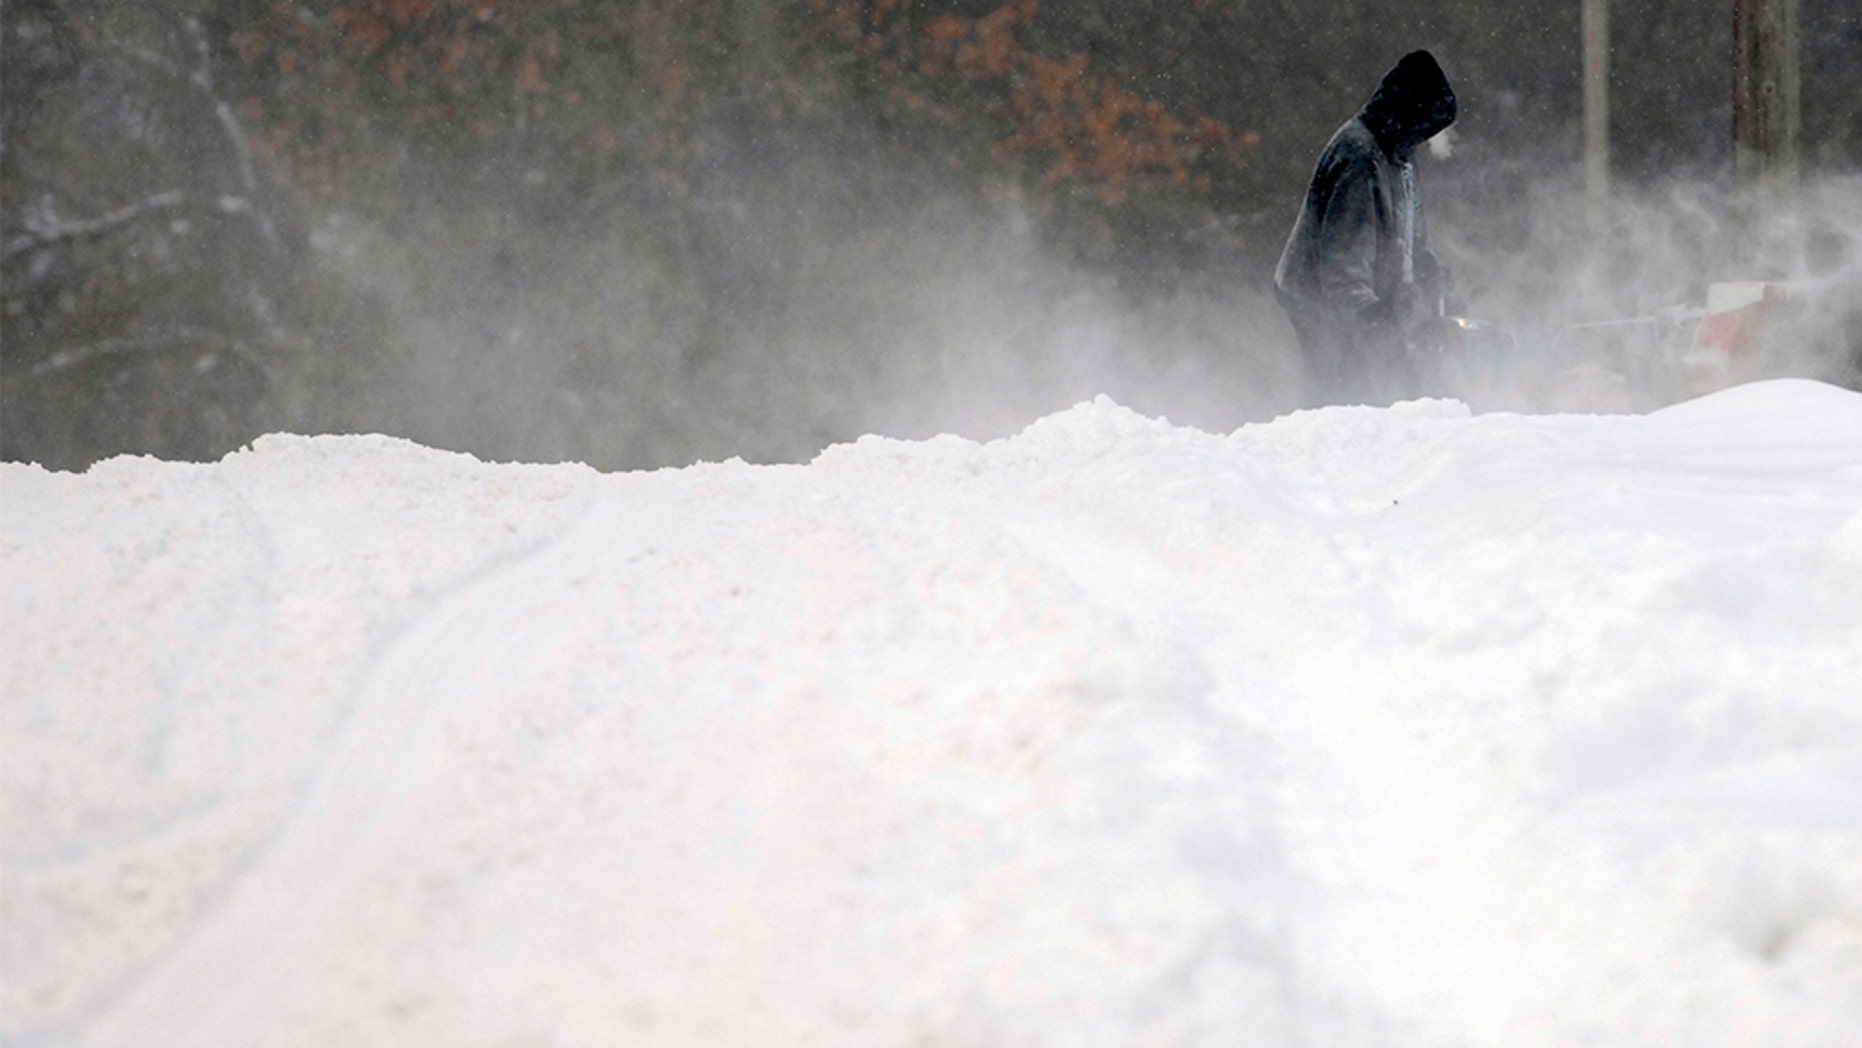 The prognosticators had issued a blizzard warning for parts of the Dakota and Minnesota, as a big winter storm brought heavy snow and gusty winds to the region. (Mike McCleary / The Bismarck Tribune via AP)